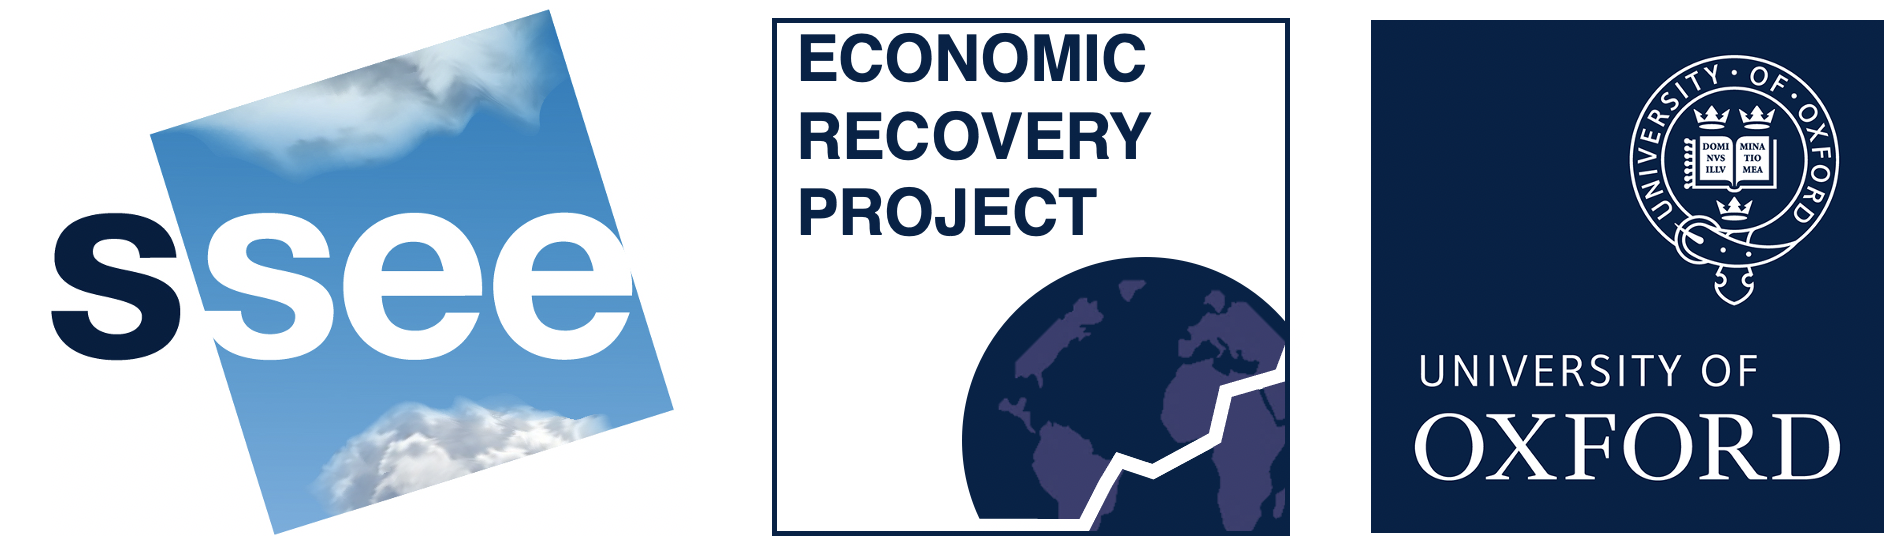 Oxford University Economic Recovery Project